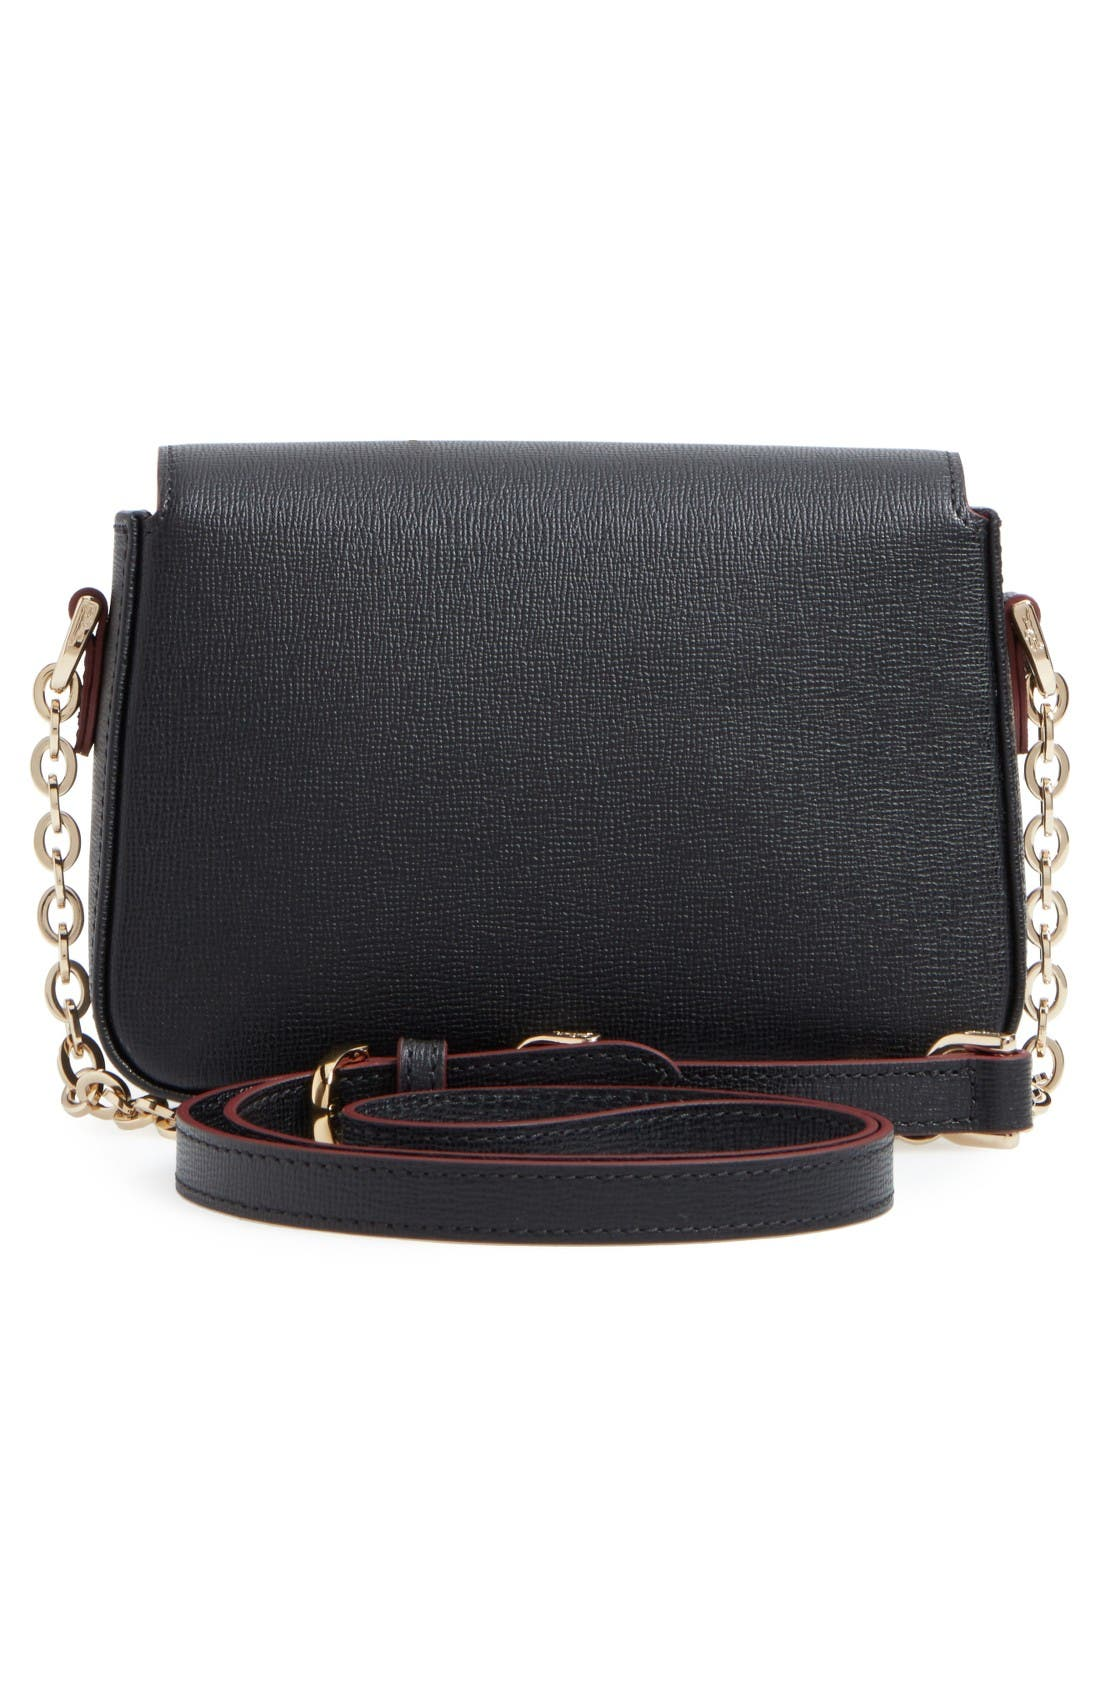 Small Le Pliage Heritage Leather Extra Small Crossbody Bag,                             Alternate thumbnail 2, color,                             Black